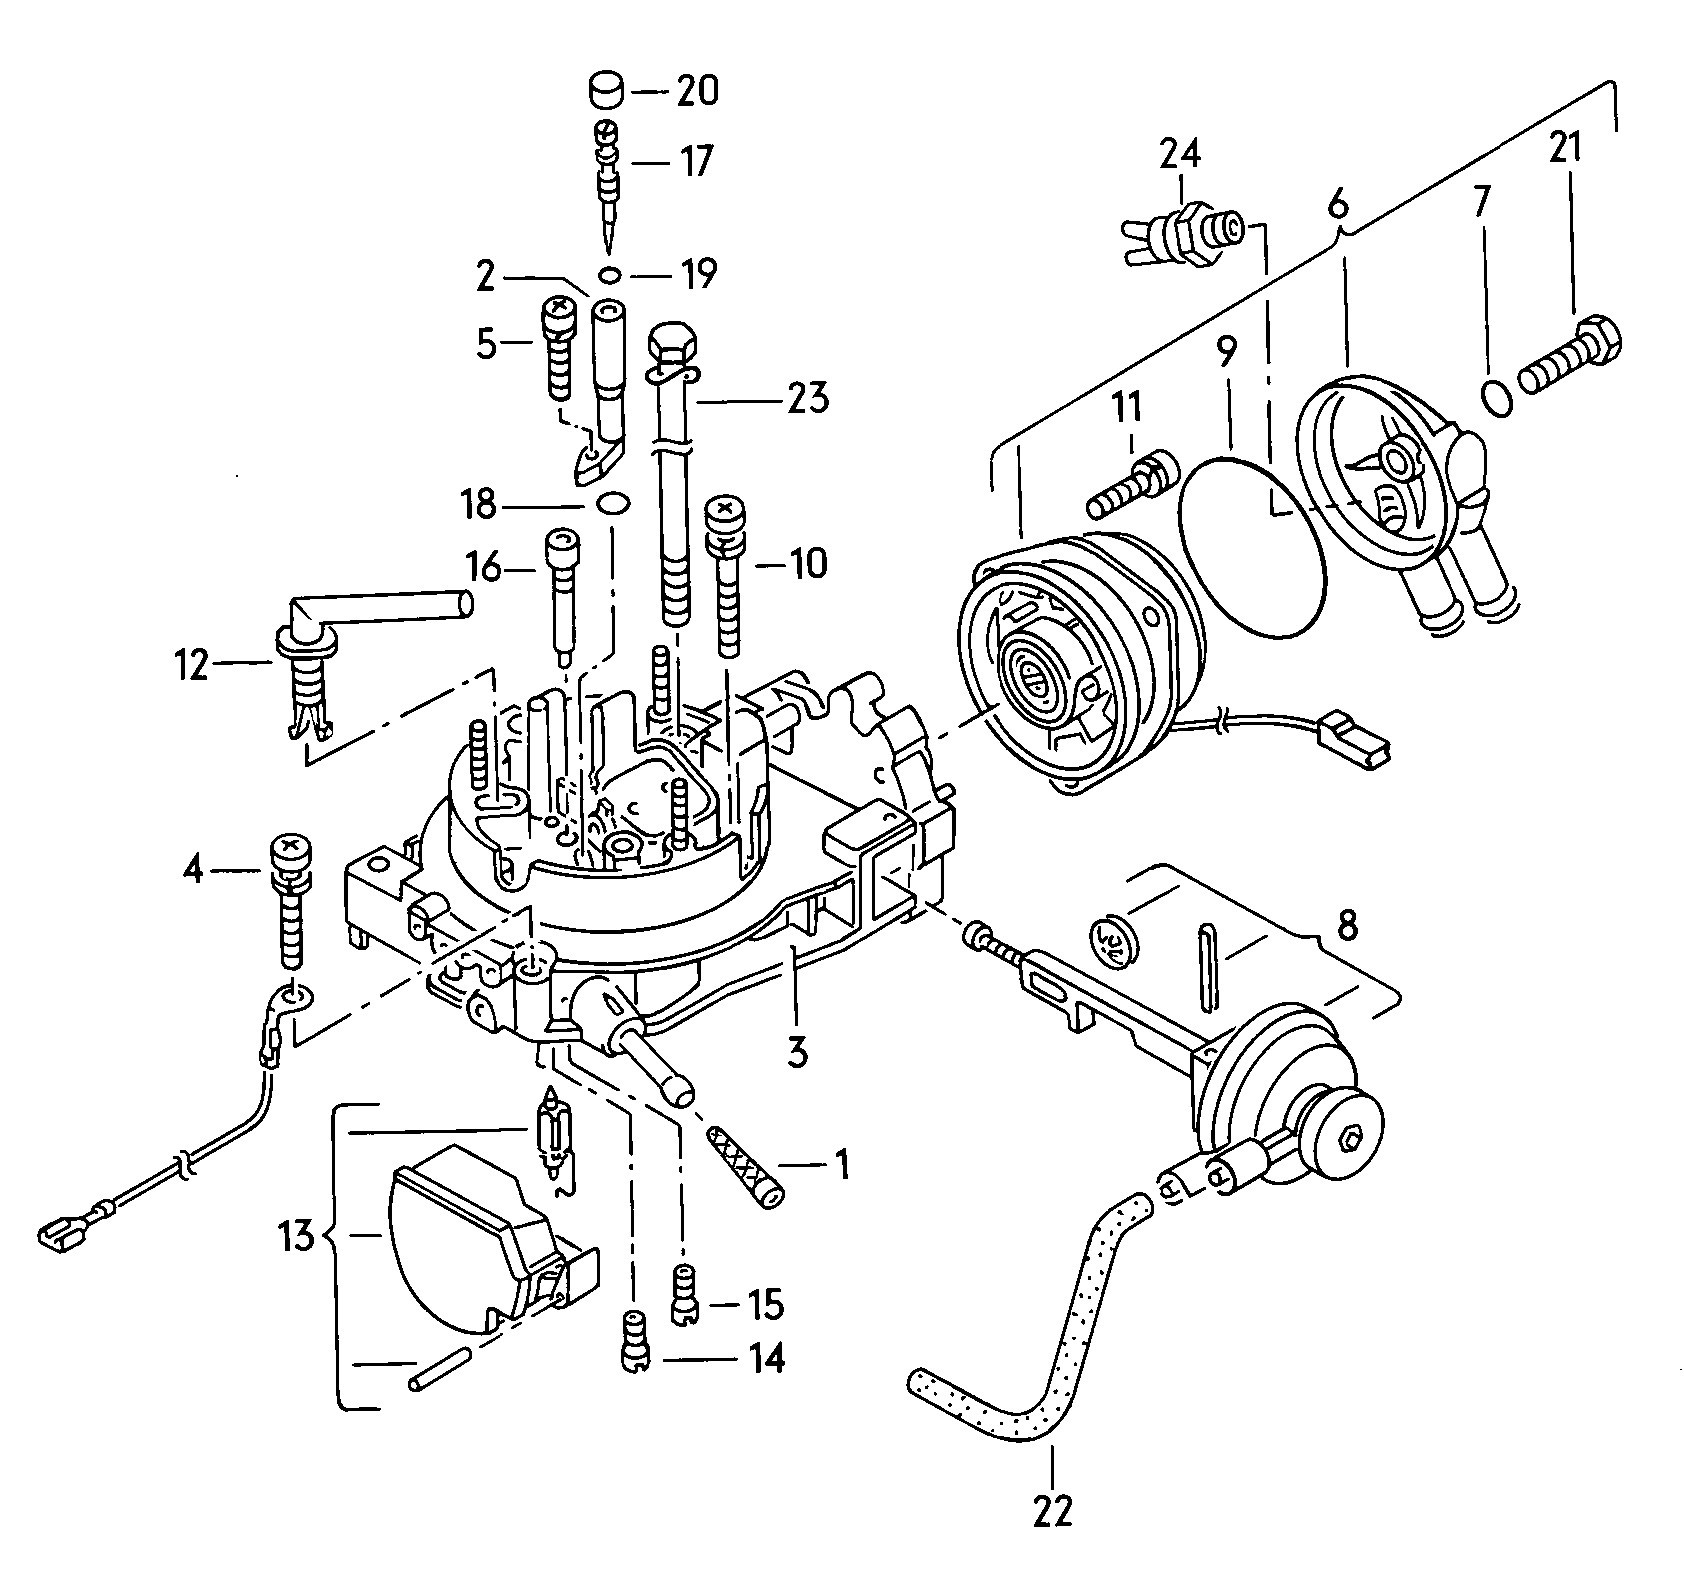 Vw Touareg Engine Diagram 2008 Polaris Sportsman Wiring Http Related Post